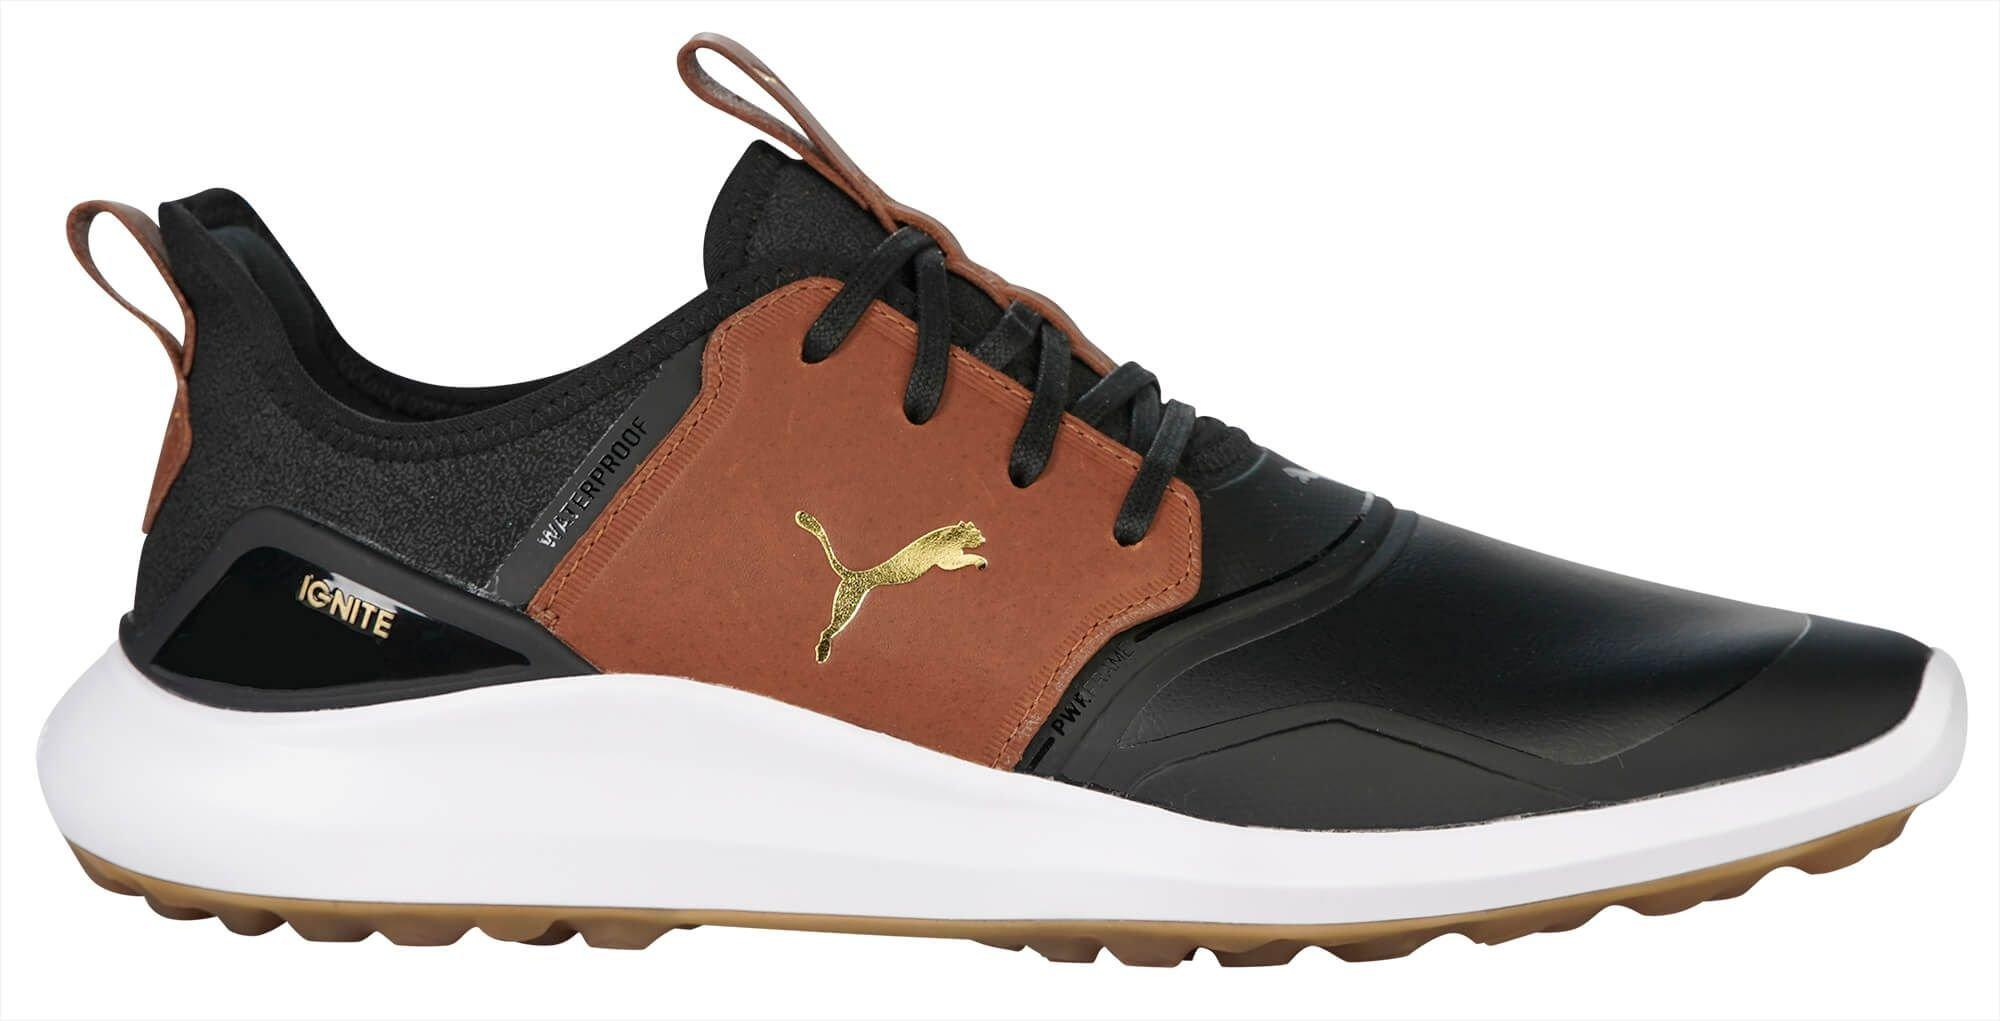 Puma Ignite Nxt Crafted Golf Shoes 2020 Puma Black Leather Brown Team Gold Carl S Golfland